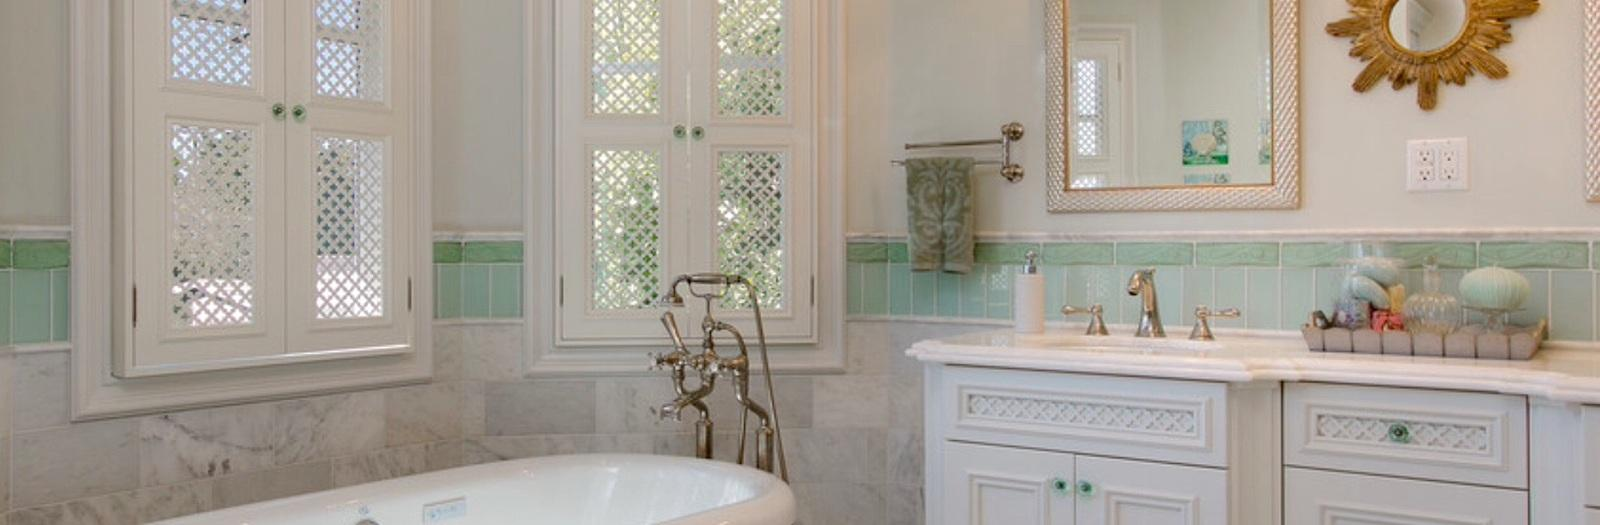 Shabby Chic Bathroom with shabby chic style master bathroom